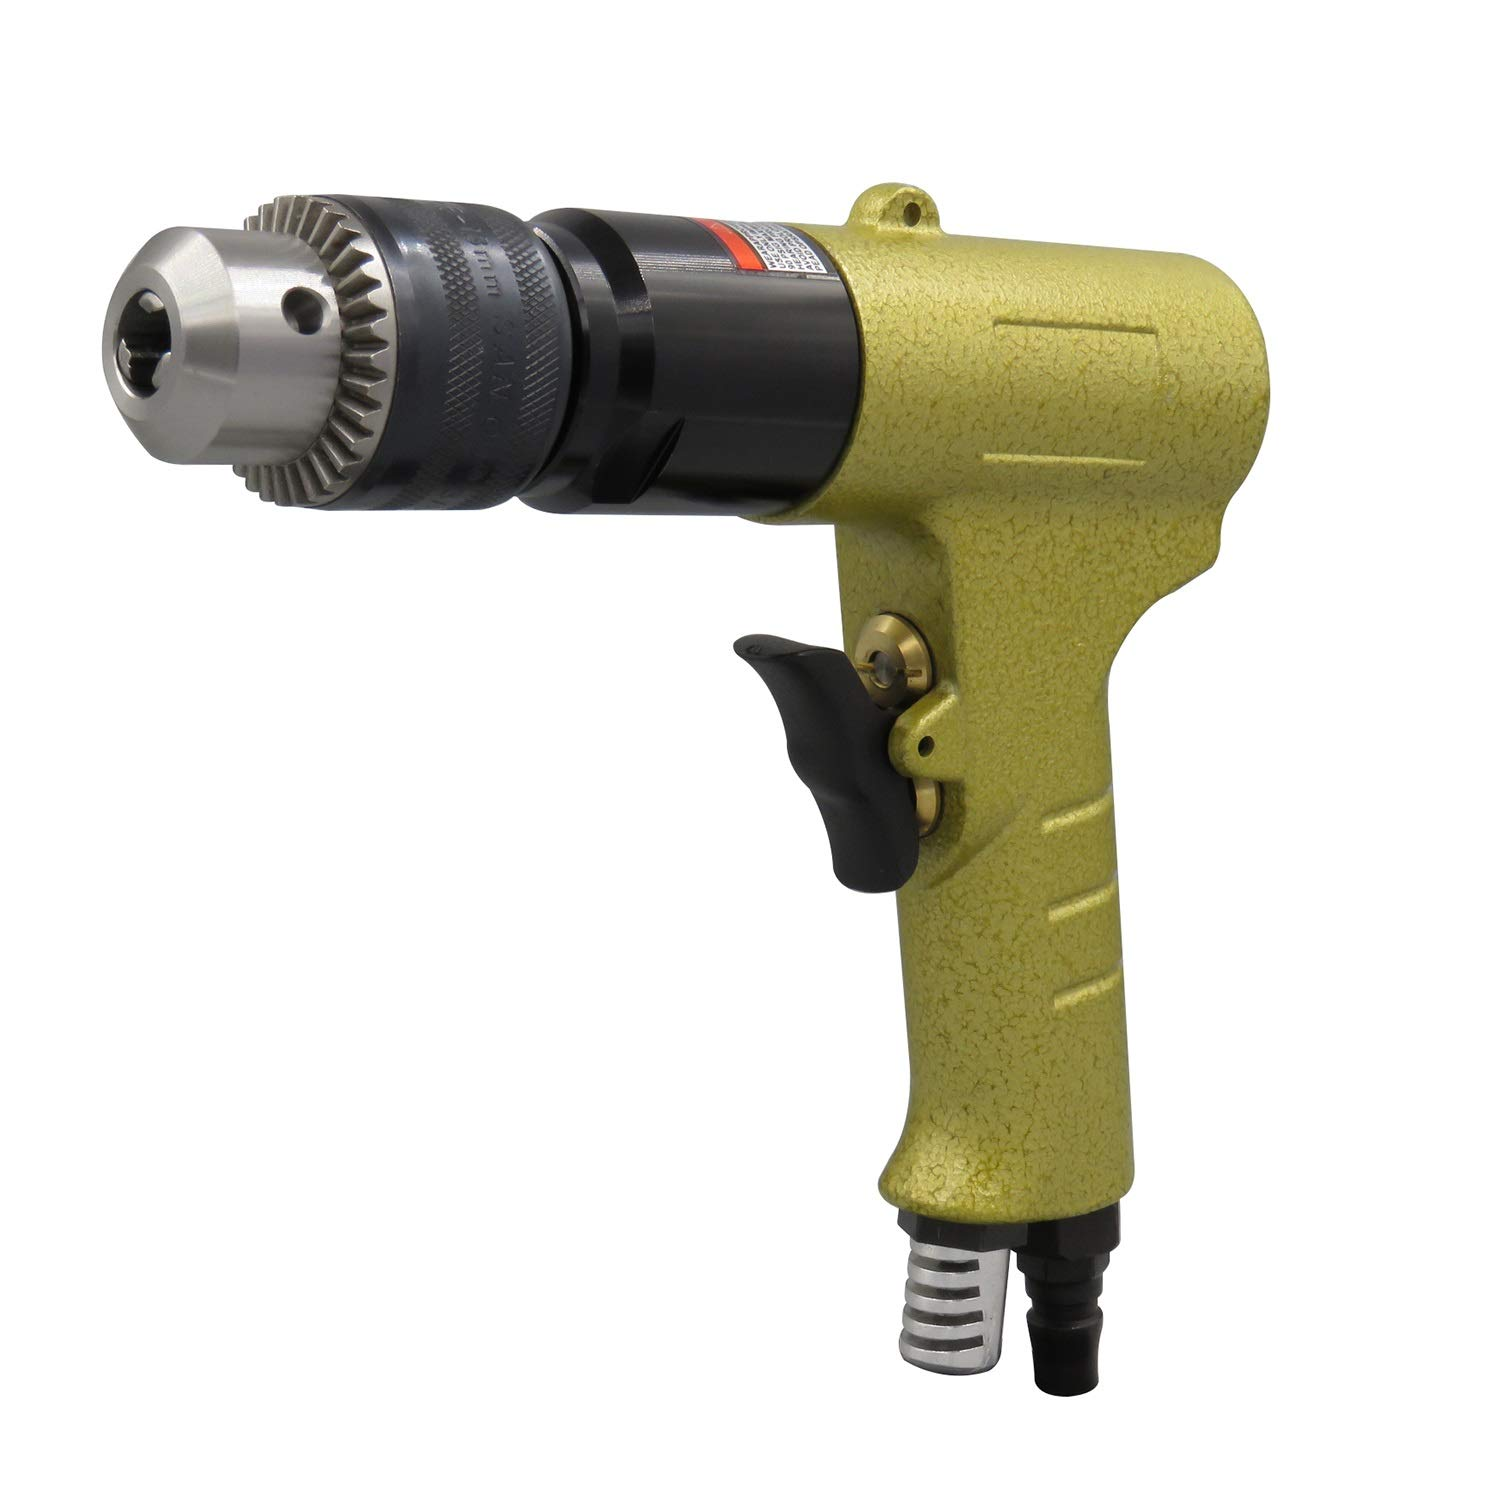 1/2'' (13mm) Pneumatic Pistol Drill, Positive and Negative Air Drill, Industrial Grade Pneumatic Drilling Tool by XIAOL-Pneumatic Tool